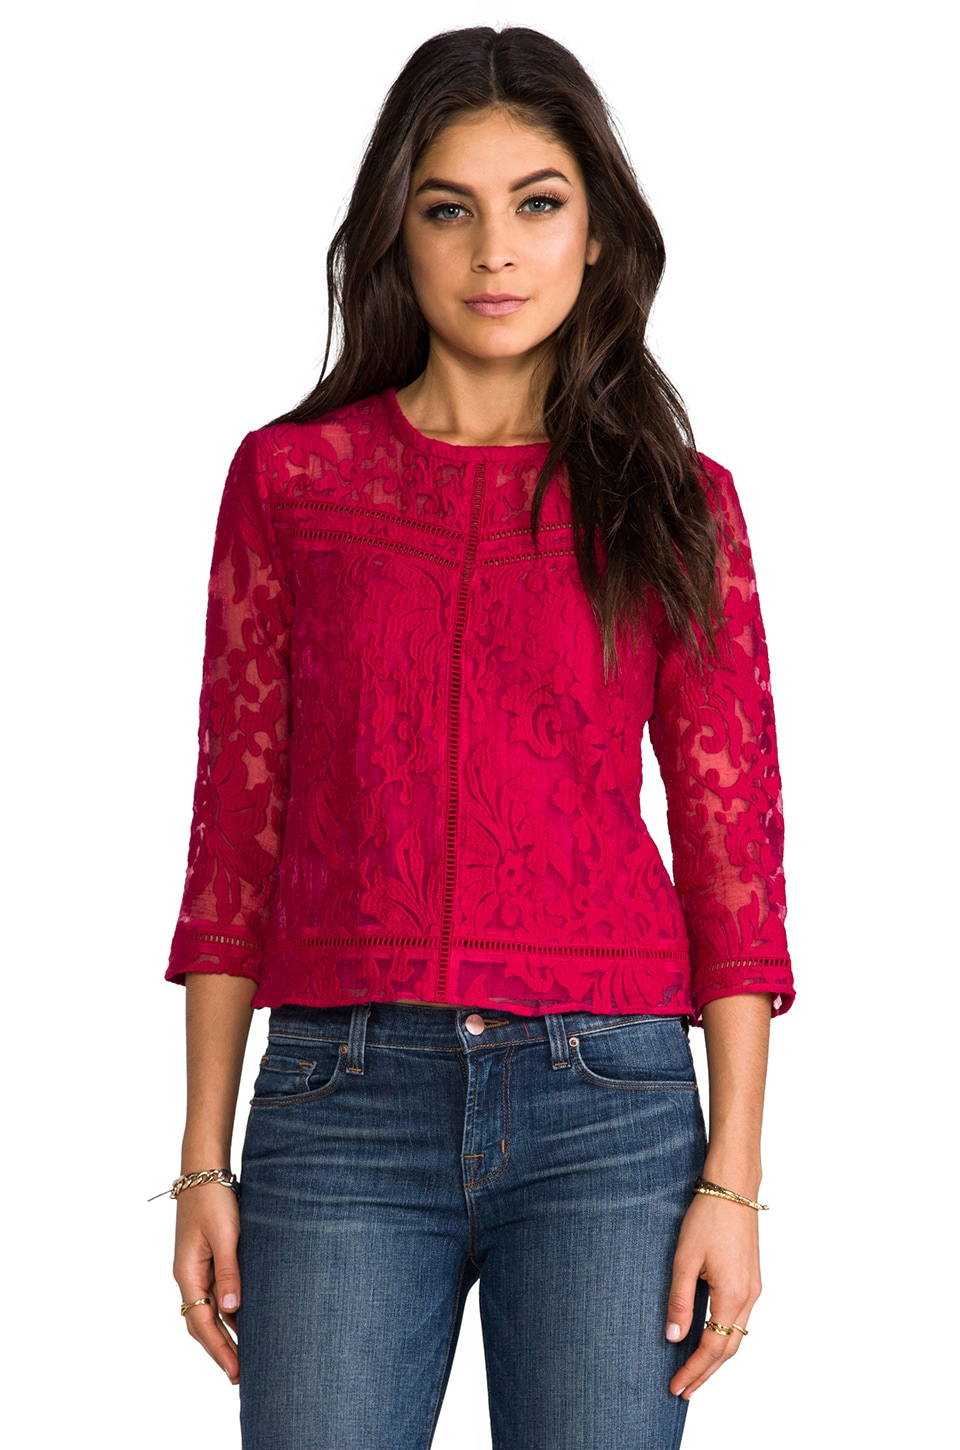 Dolce Vita Bambina Organza Lace Top in Berry